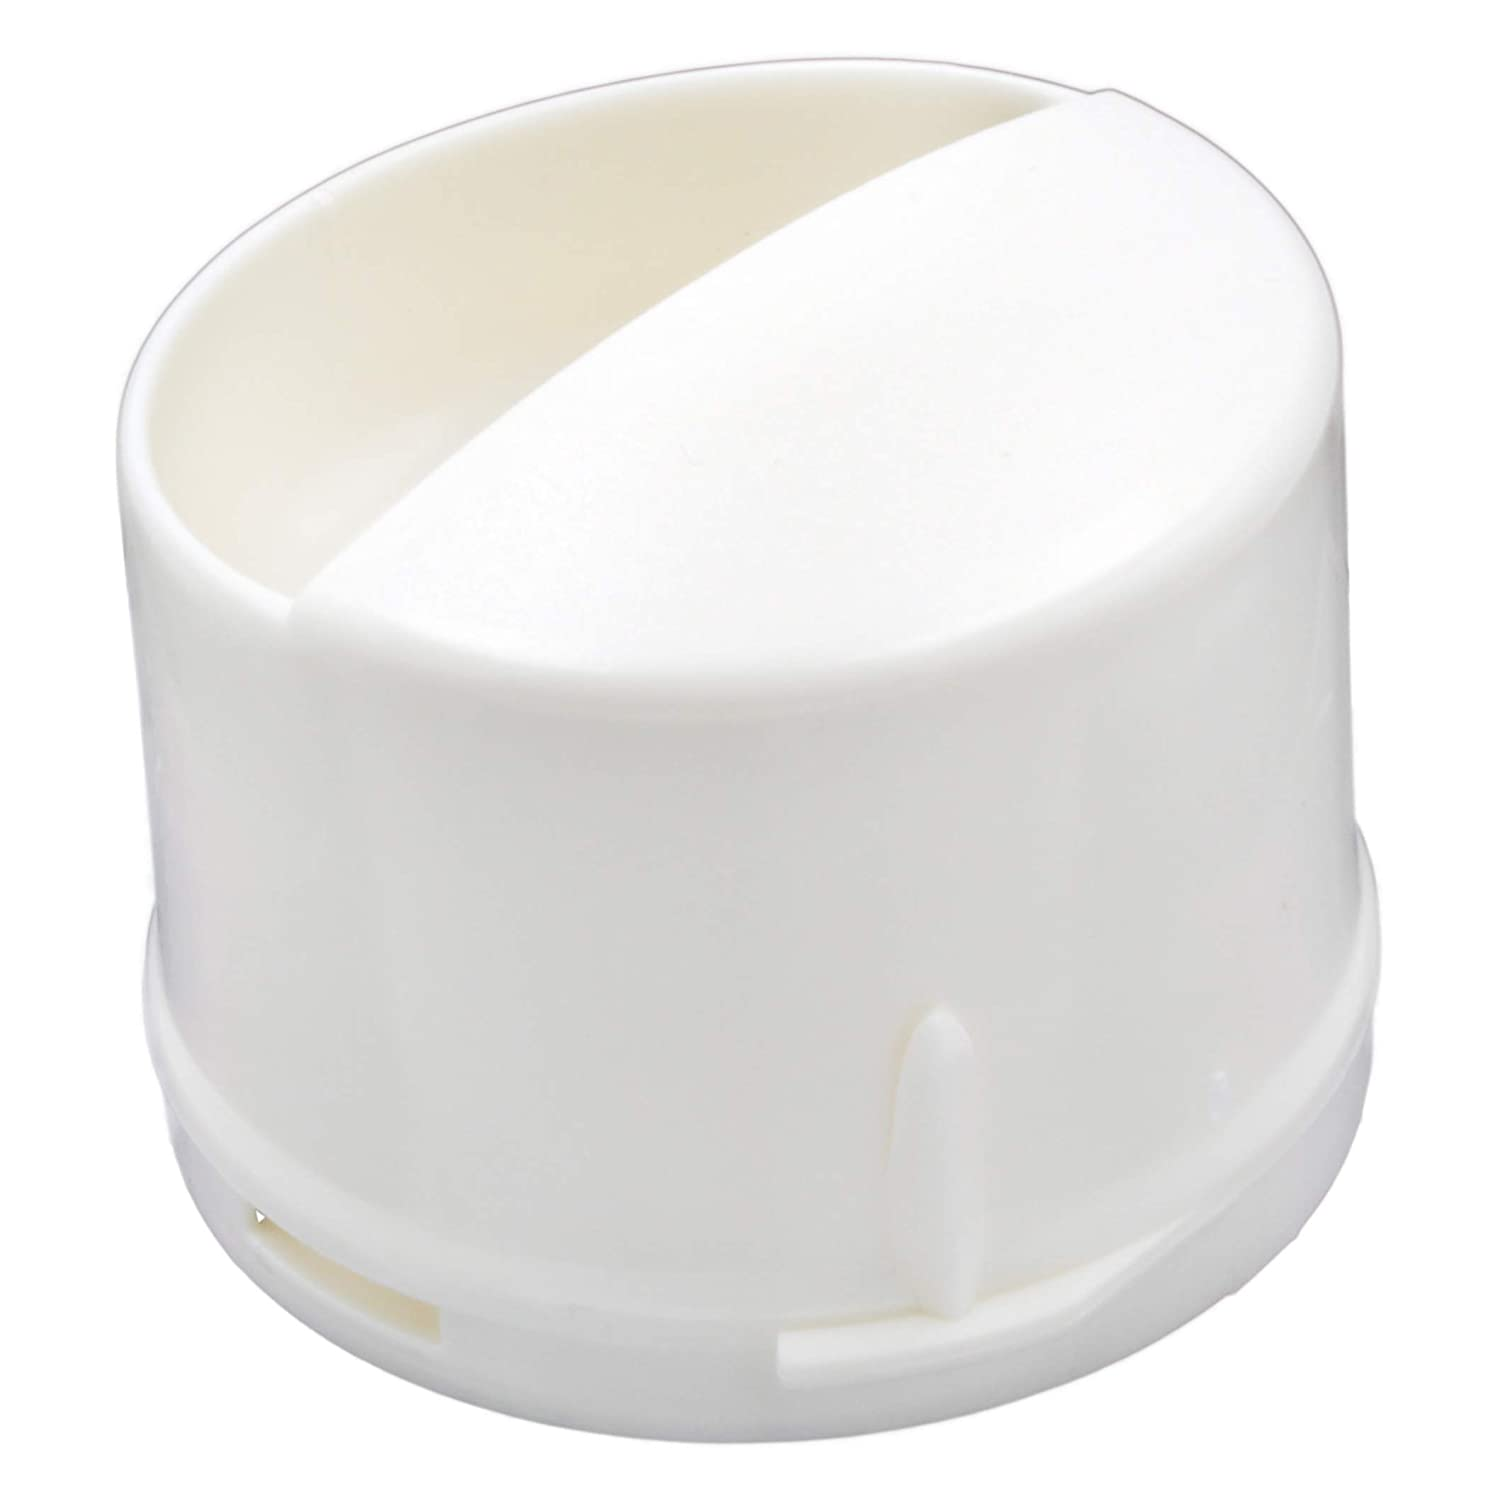 Supplying Demand 2260502W Water Filter Cap Compatible With Whirlpool Fits 2260518W, PS11739972